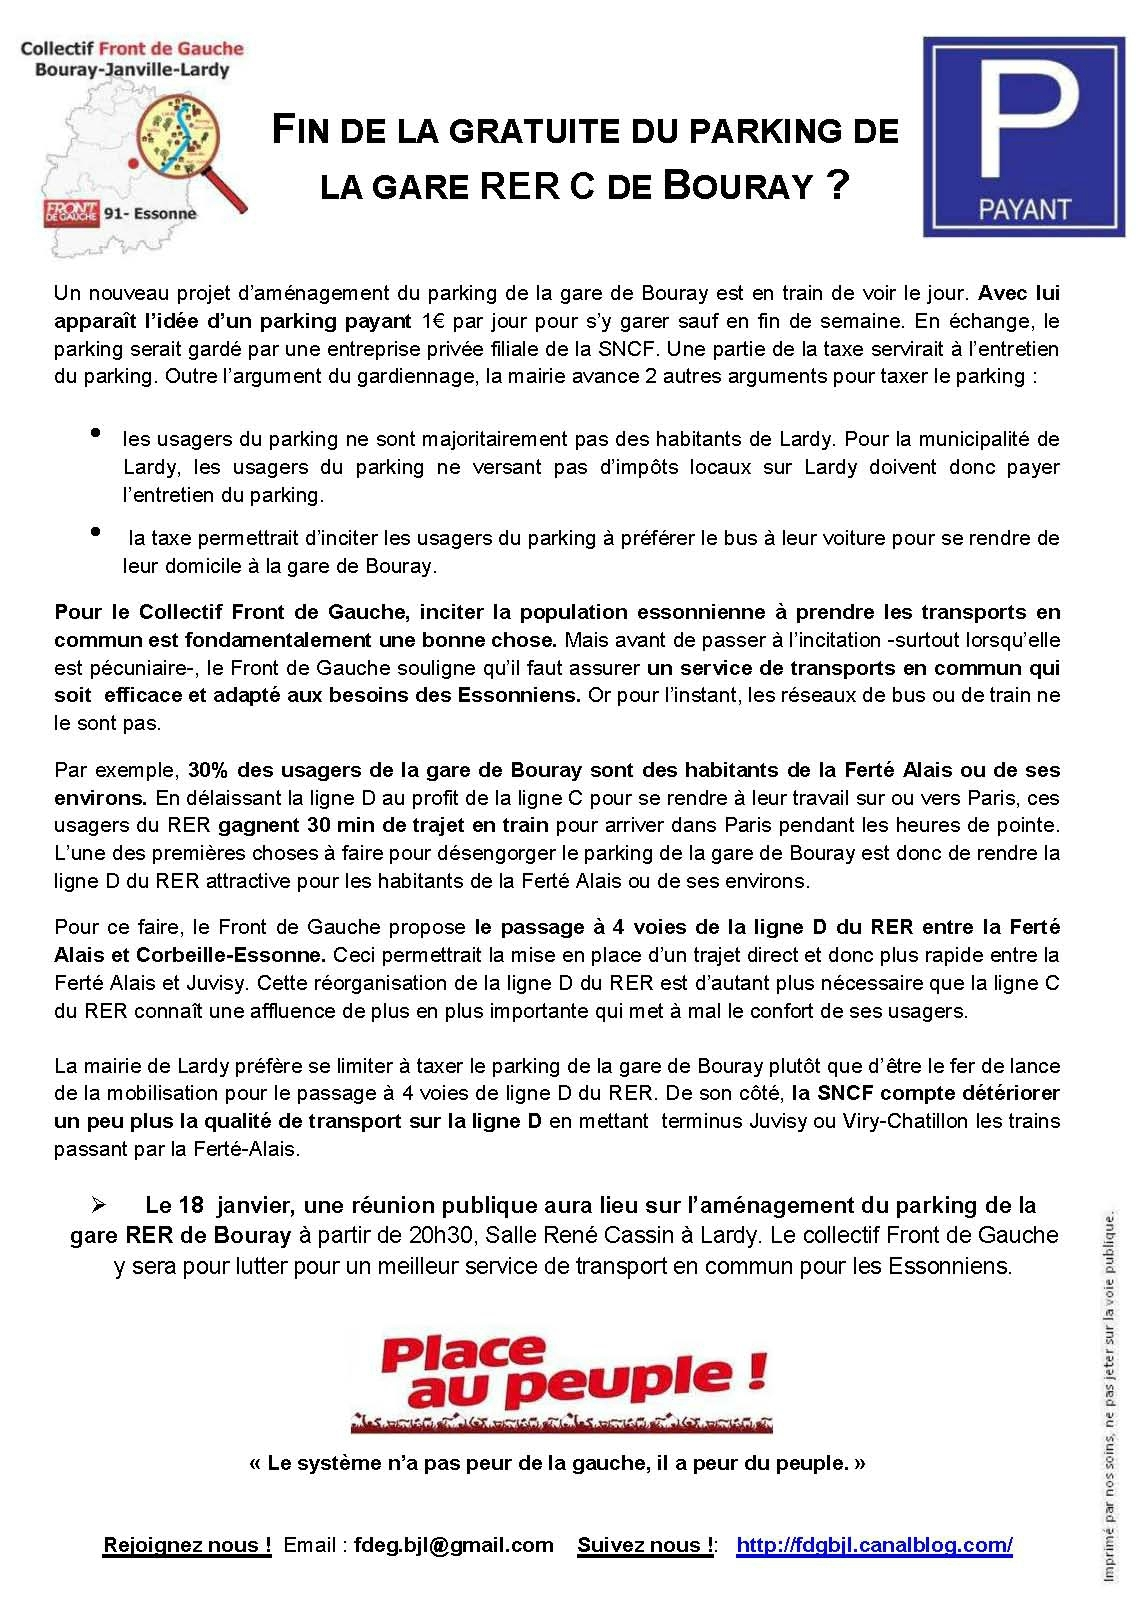 FIN DE LA GRATUITE DU PARKING DE LA GARE RER C DE BOURAY ?